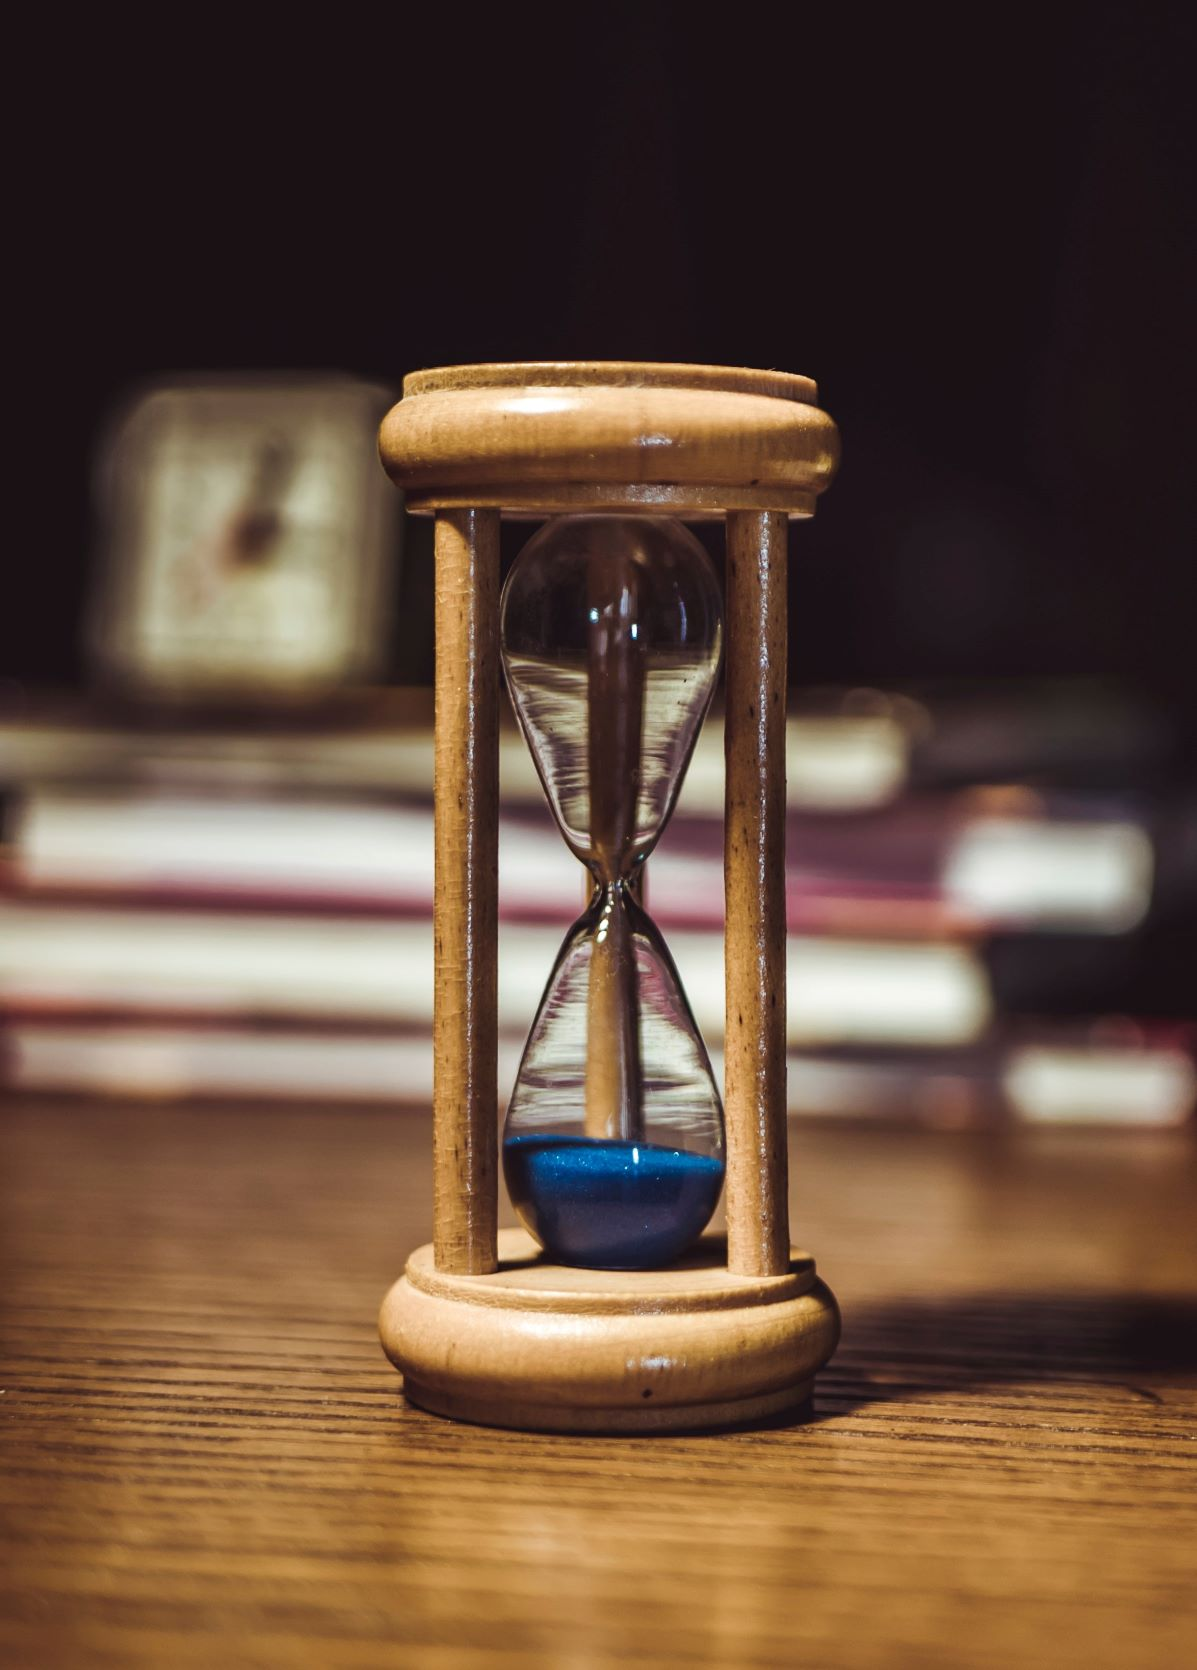 An hourglass with books and a clock in the background